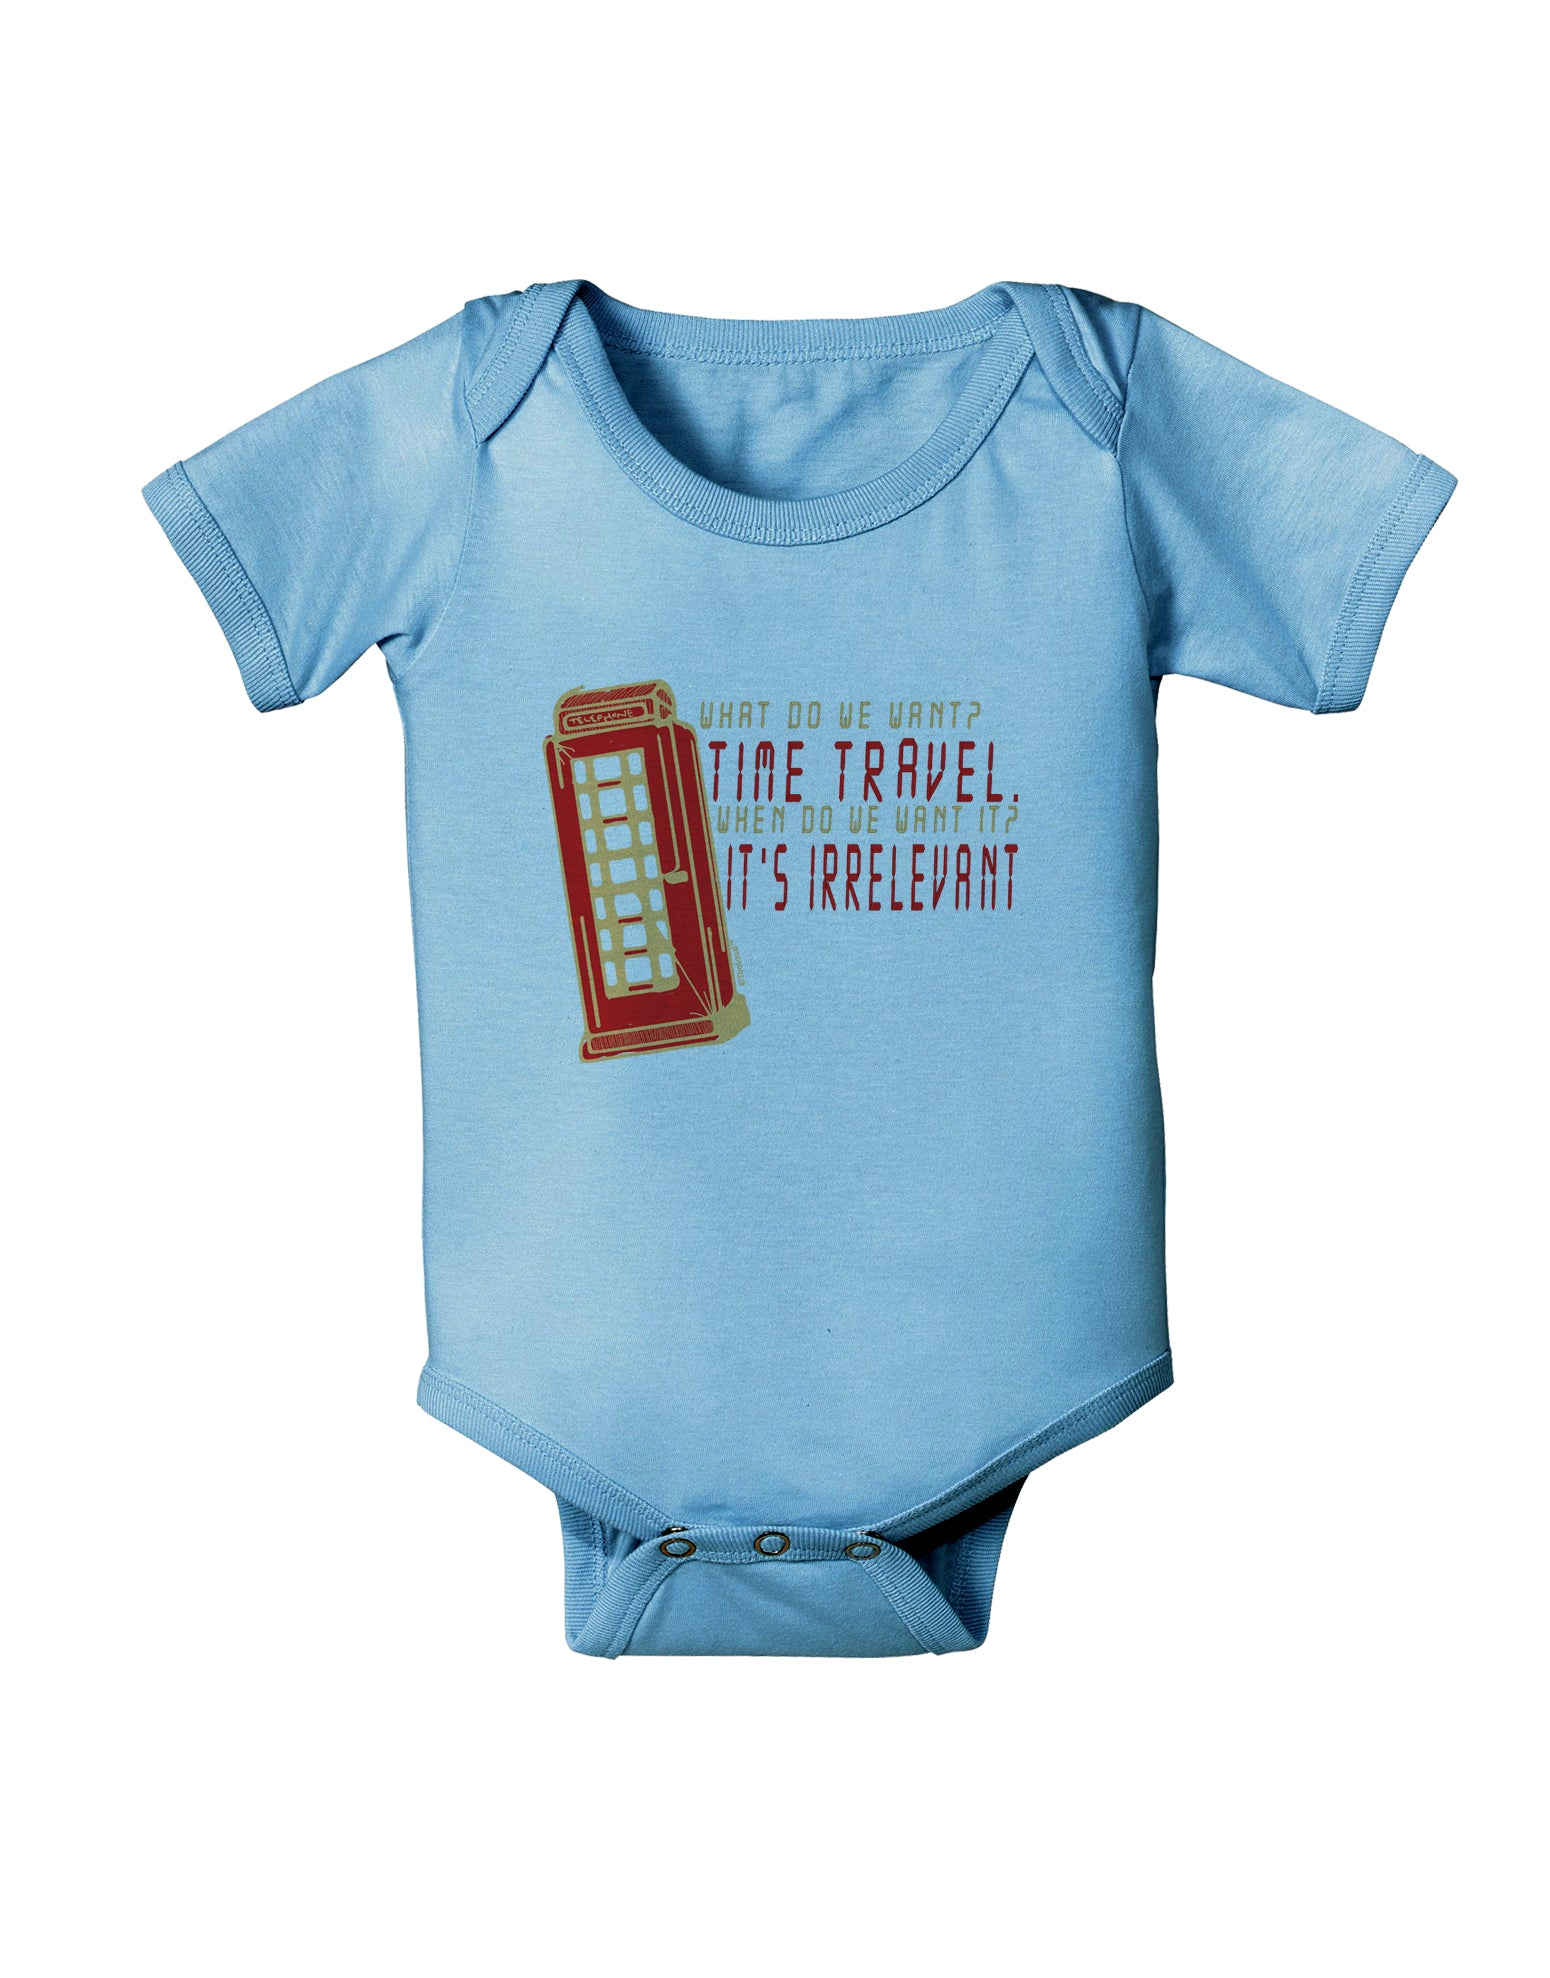 TOOLOUD What do we Want Time Travel When do we Want it Its Irrelevant Childrens T-Shirt